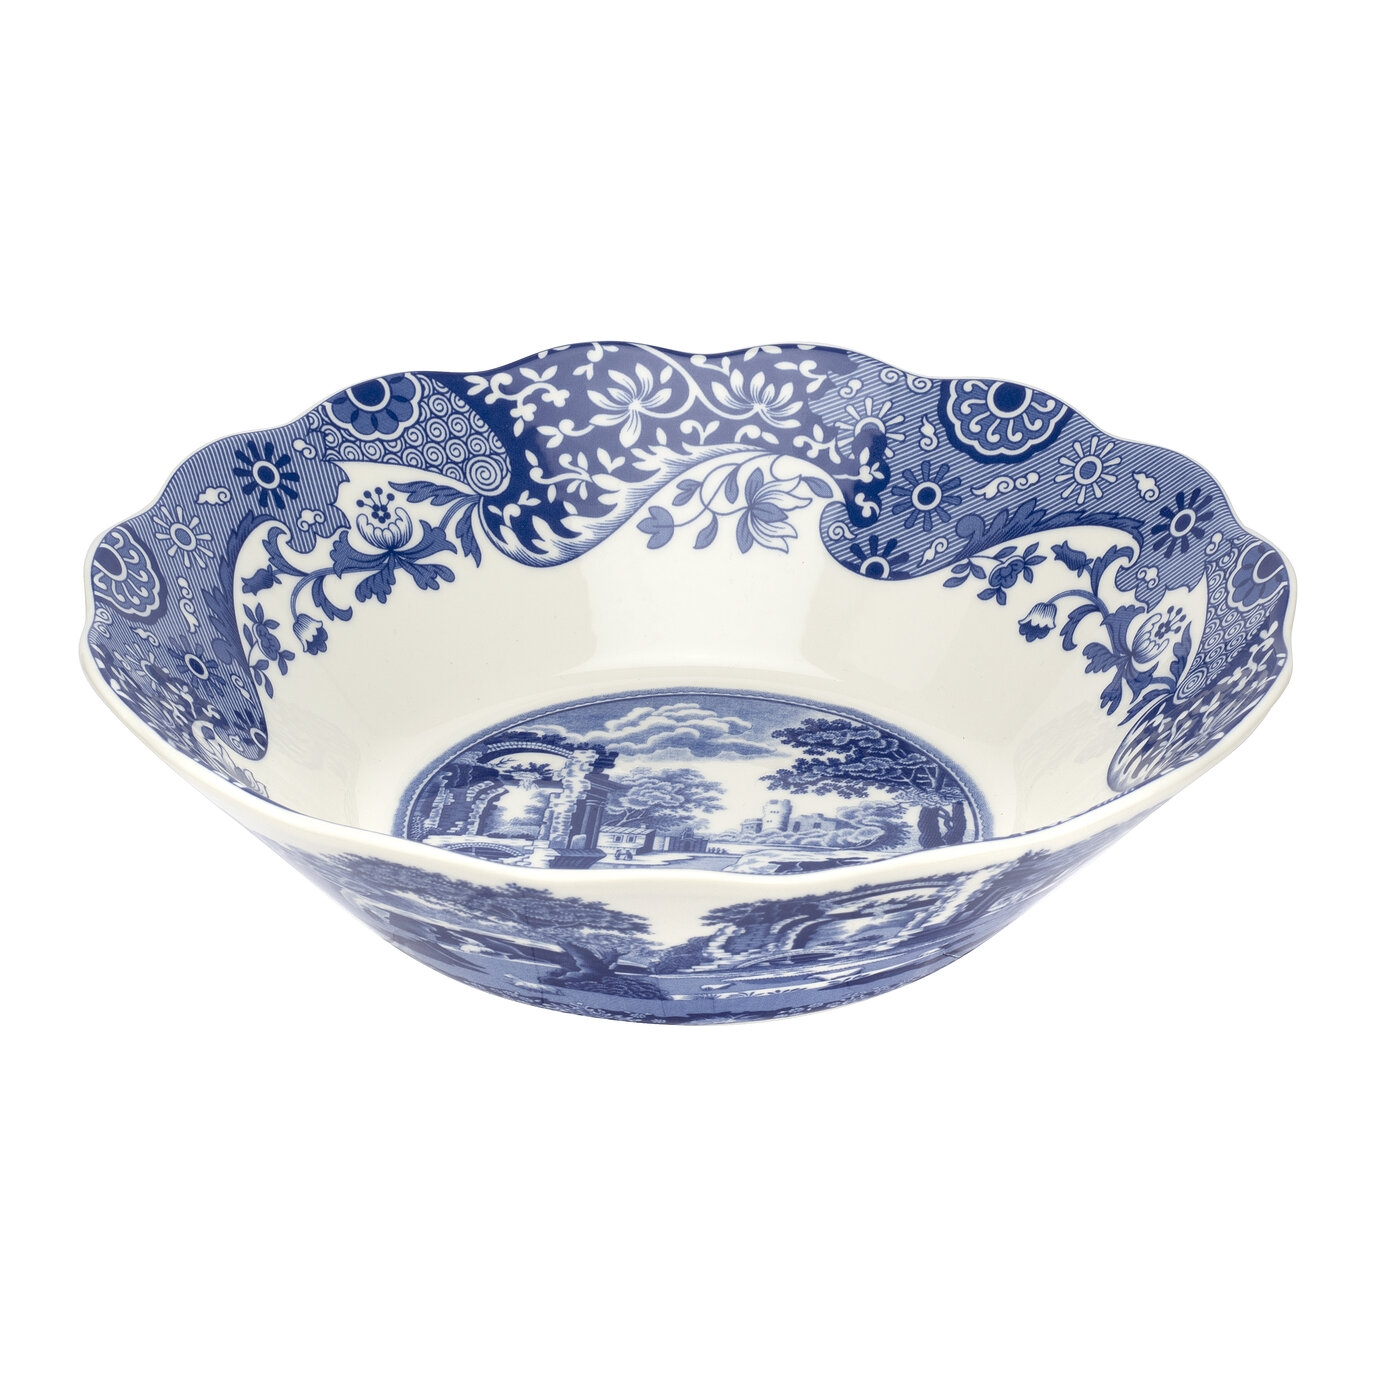 Spode Blue Italian 10 Inch Daisy Bowl image number 0